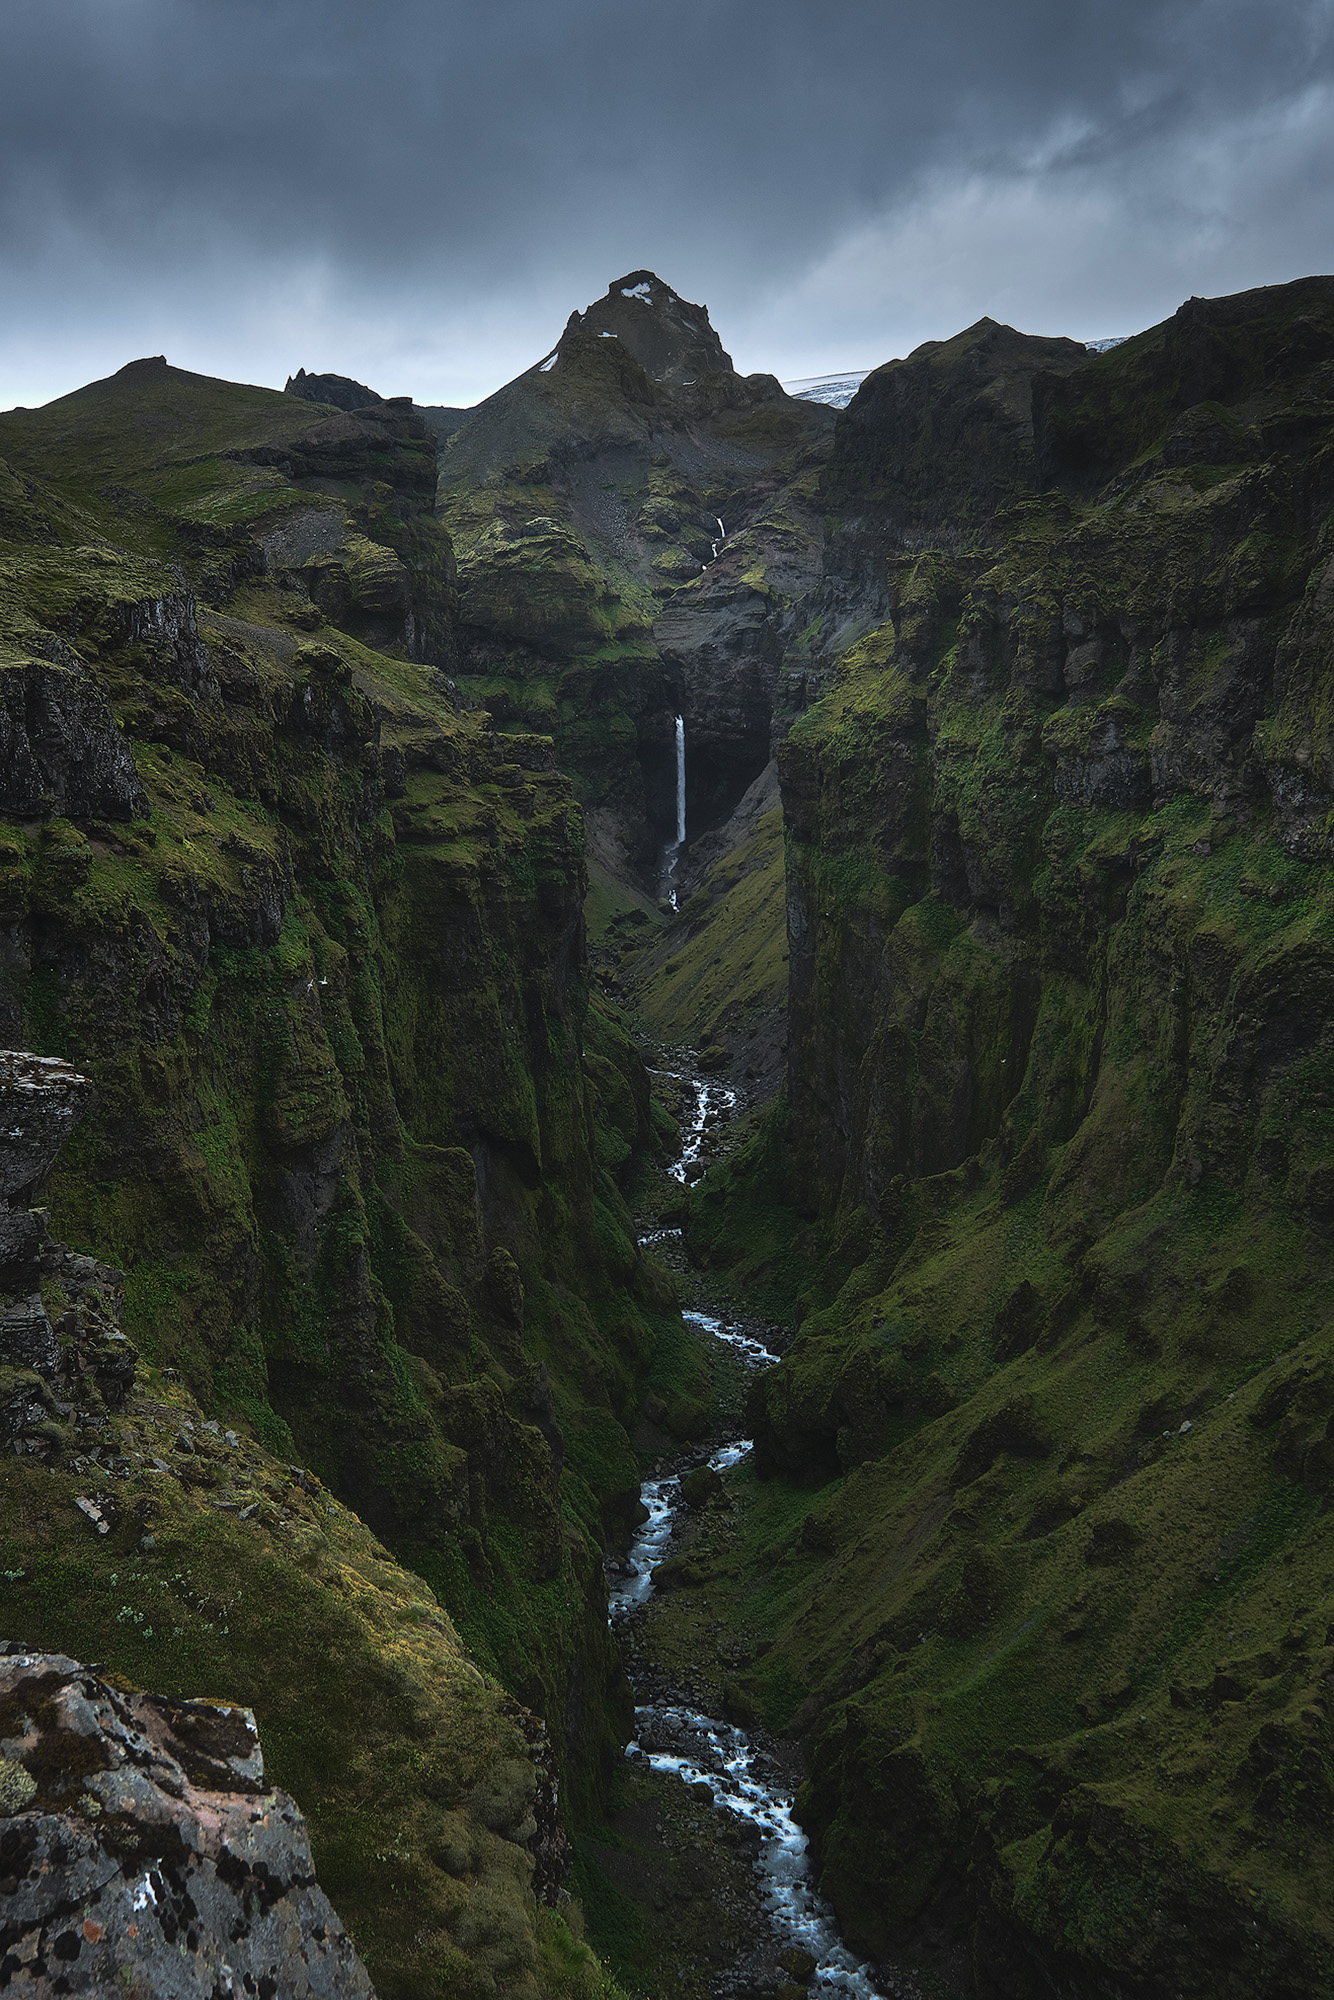 The Canyon   A telephoto view of one of Iceland's most incredible canyons showing the fantastic natural symmetry of the place scene.